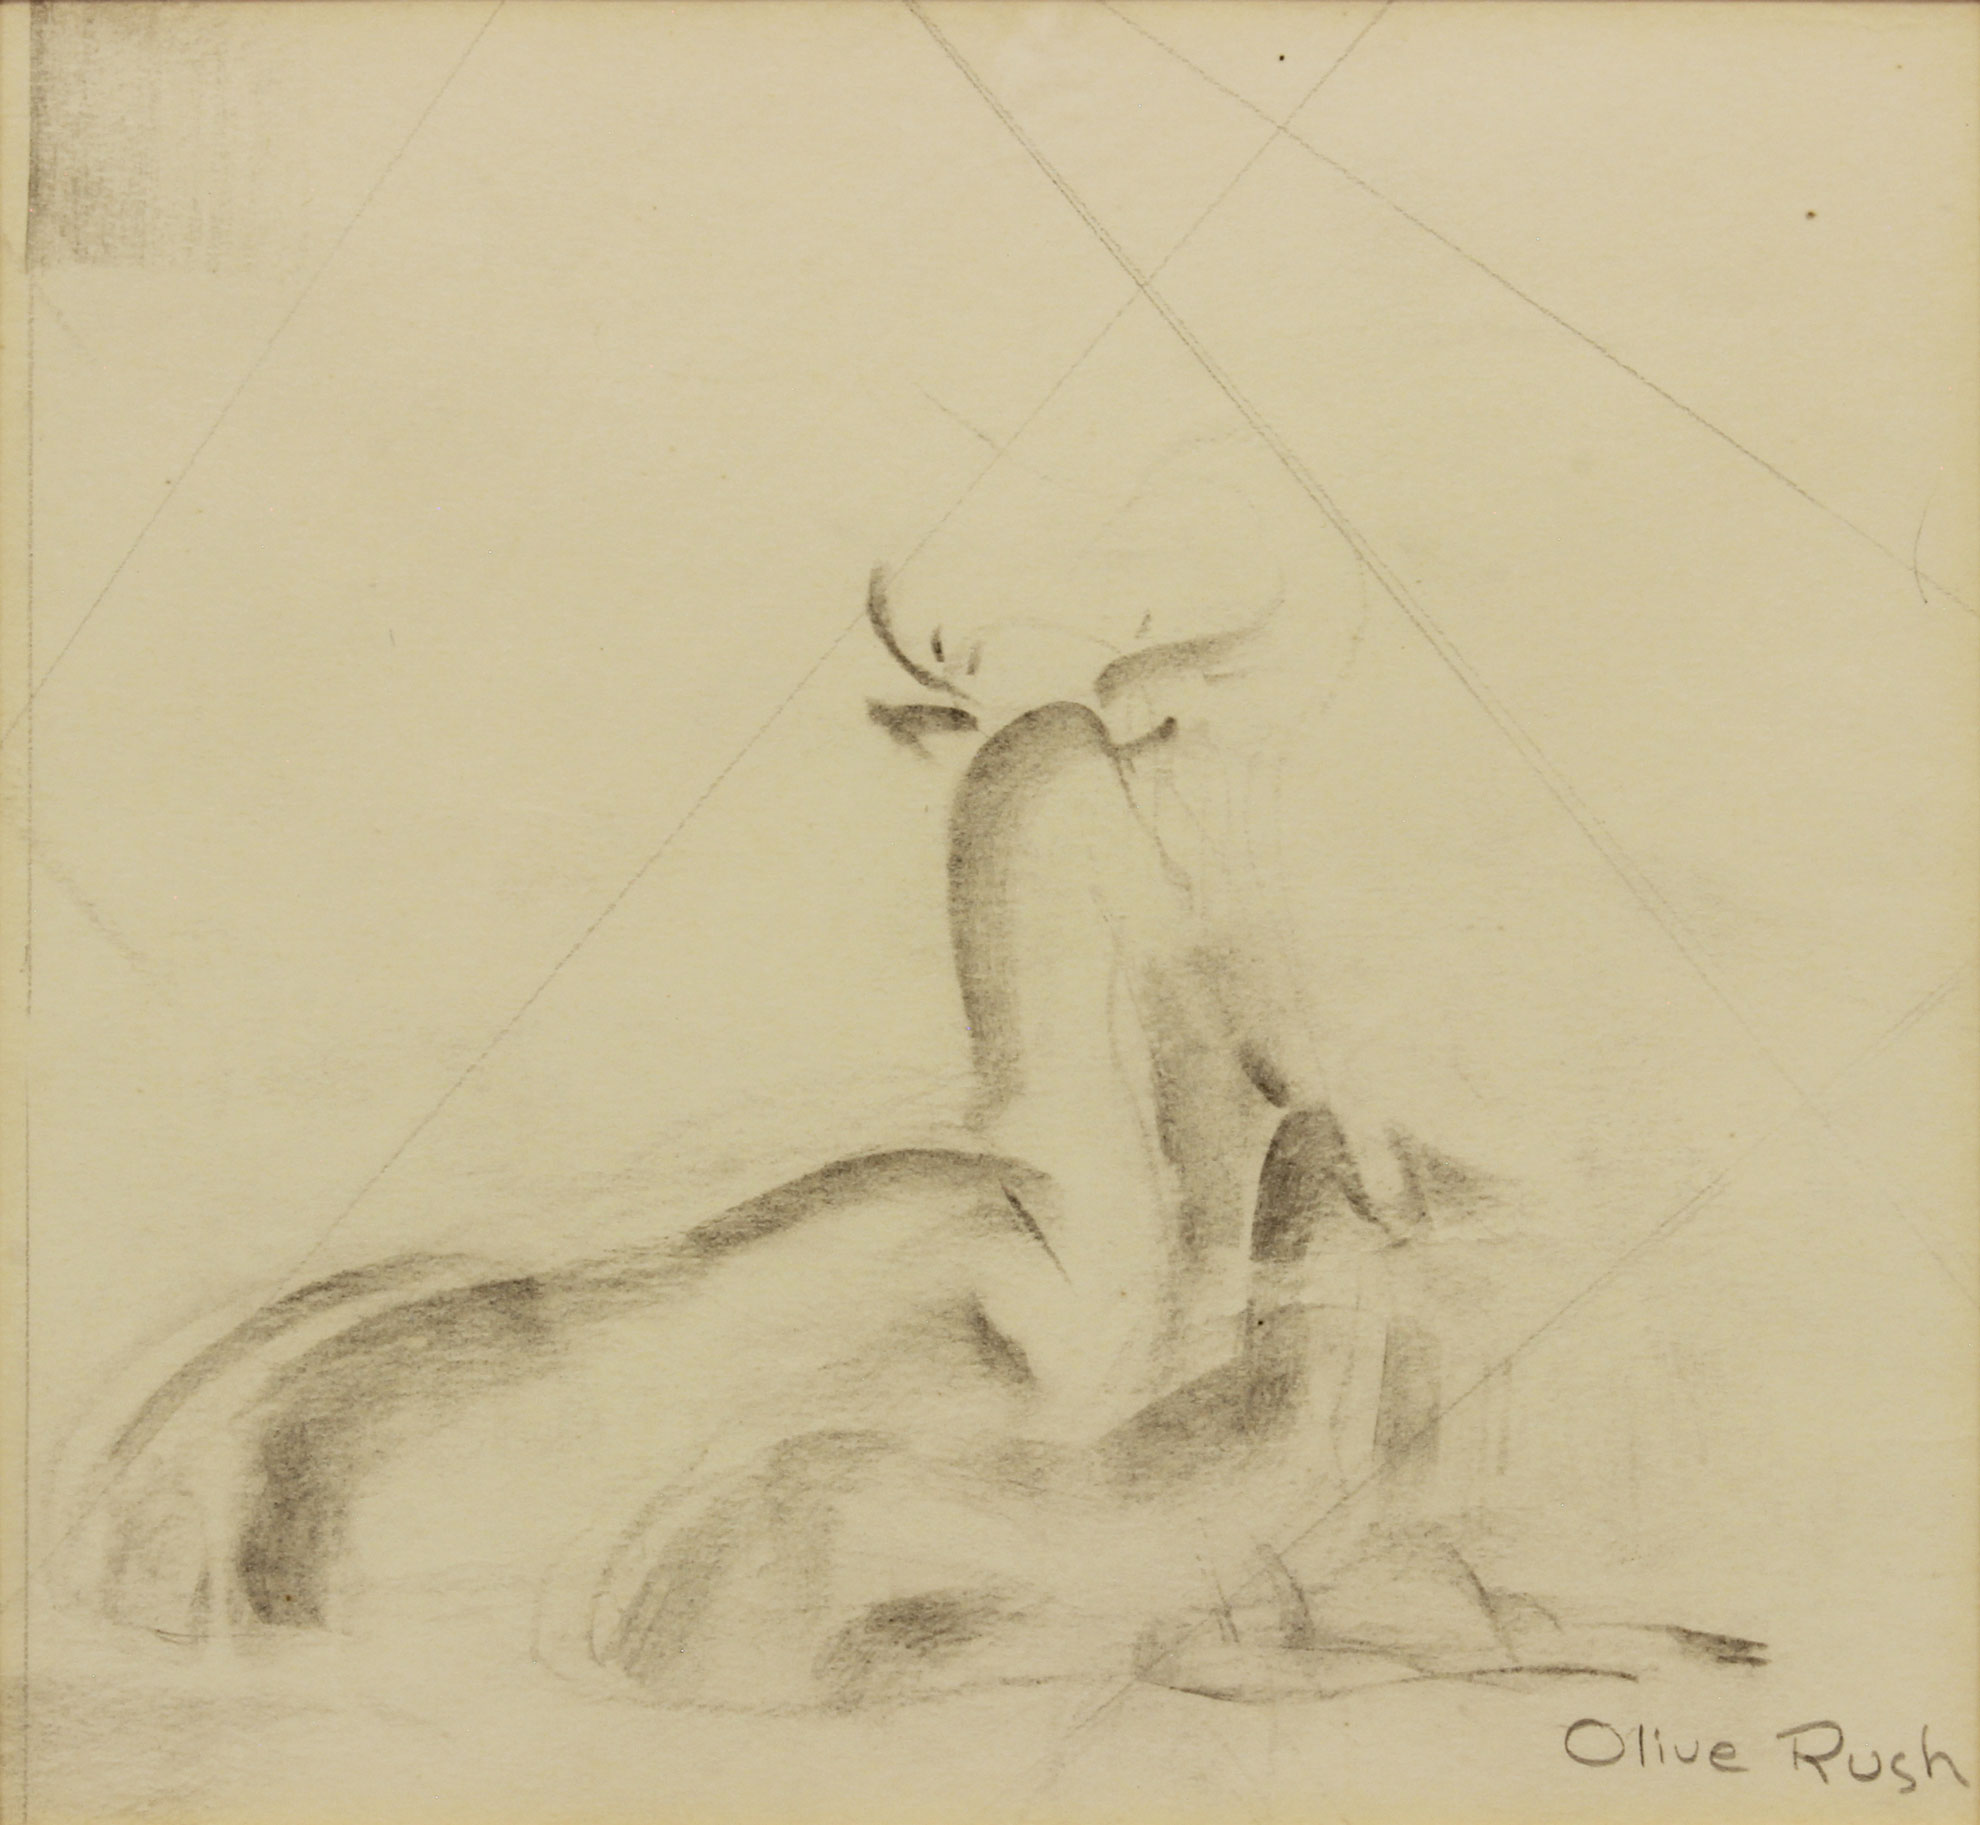 Rush-Olive---Untitled-Deer-2-unframed